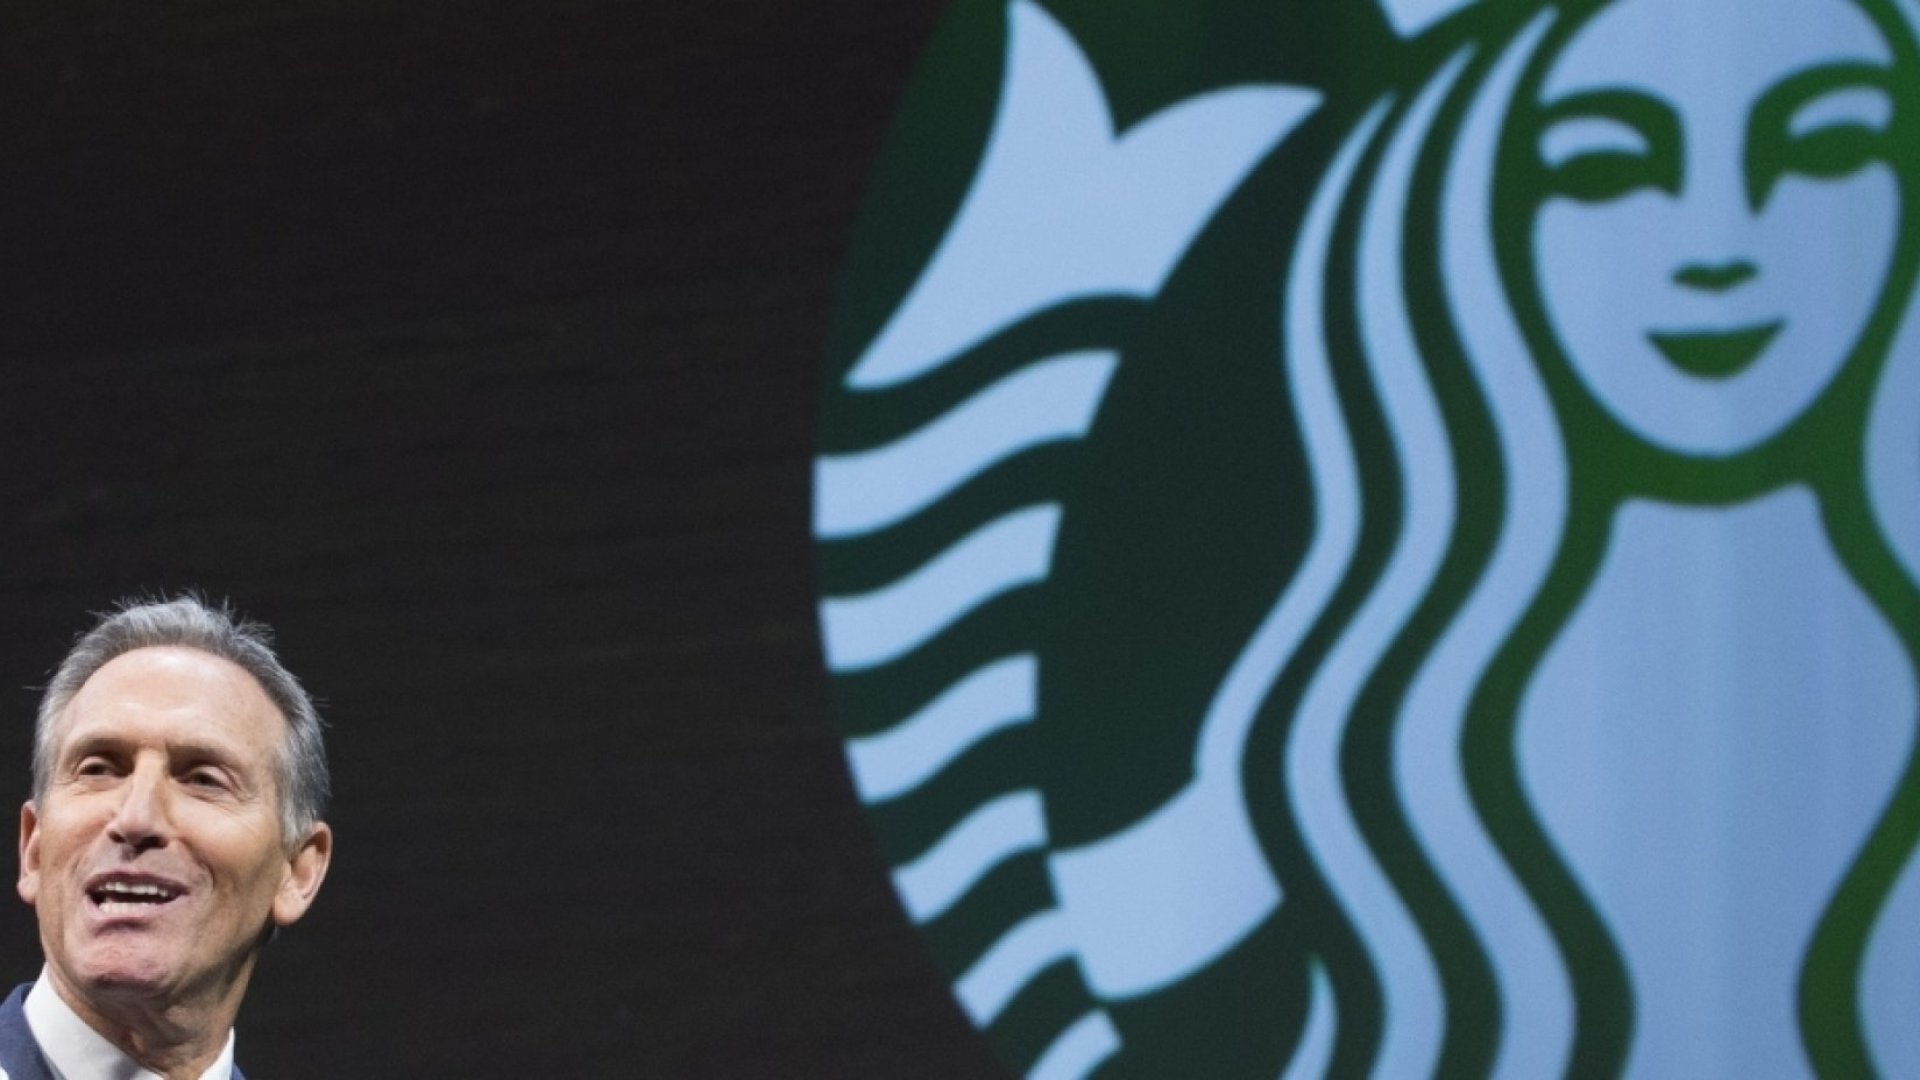 Howard Schultz Tells Starbucks Staff How Trump's 'Chaos' Is Making the World 'Screwed Up'